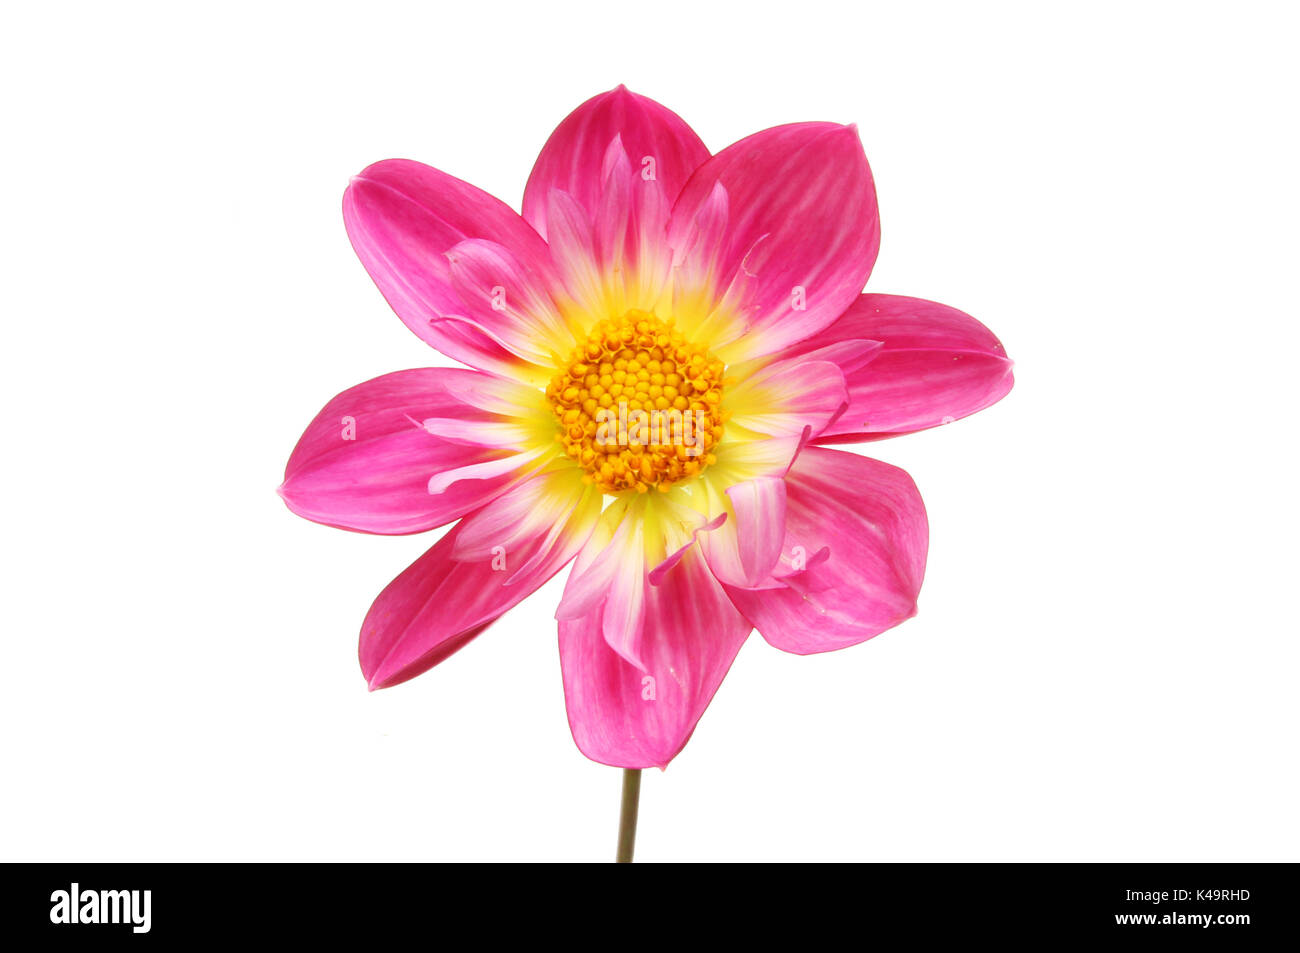 Magenta and yellow dahlia flower isolated against white - Stock Image